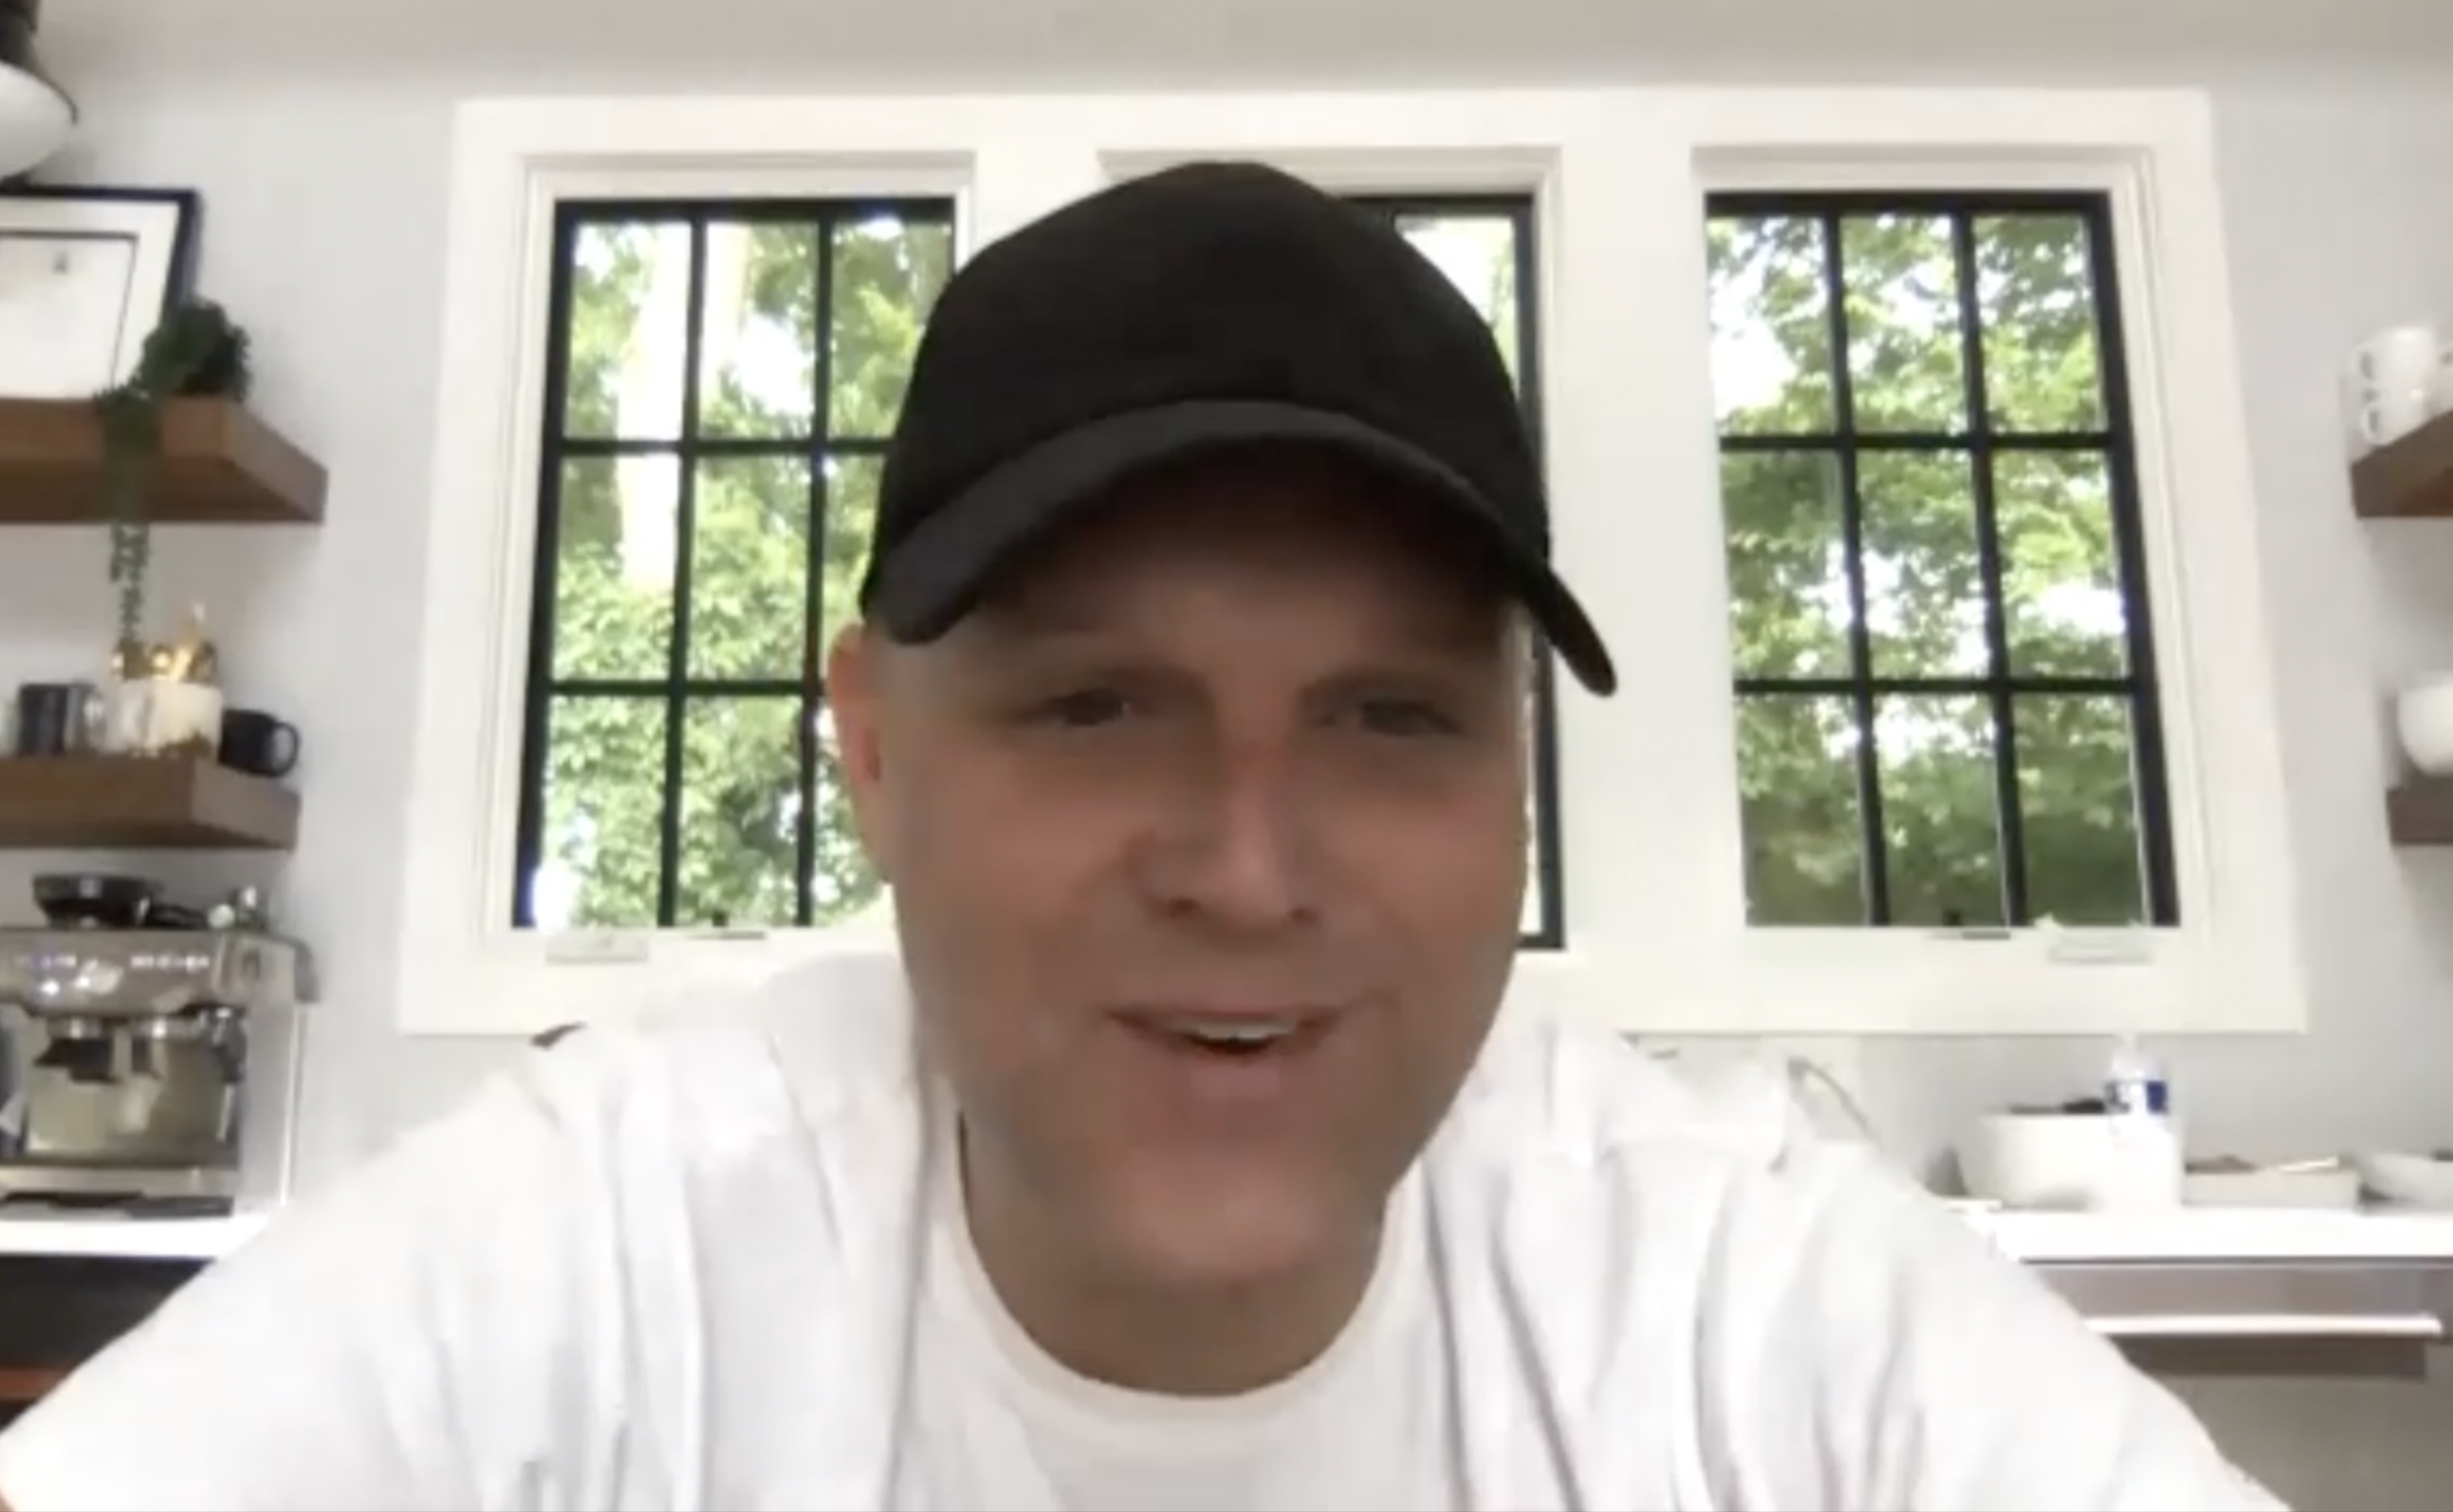 Matthew West talks hosting event to help promote healing in America